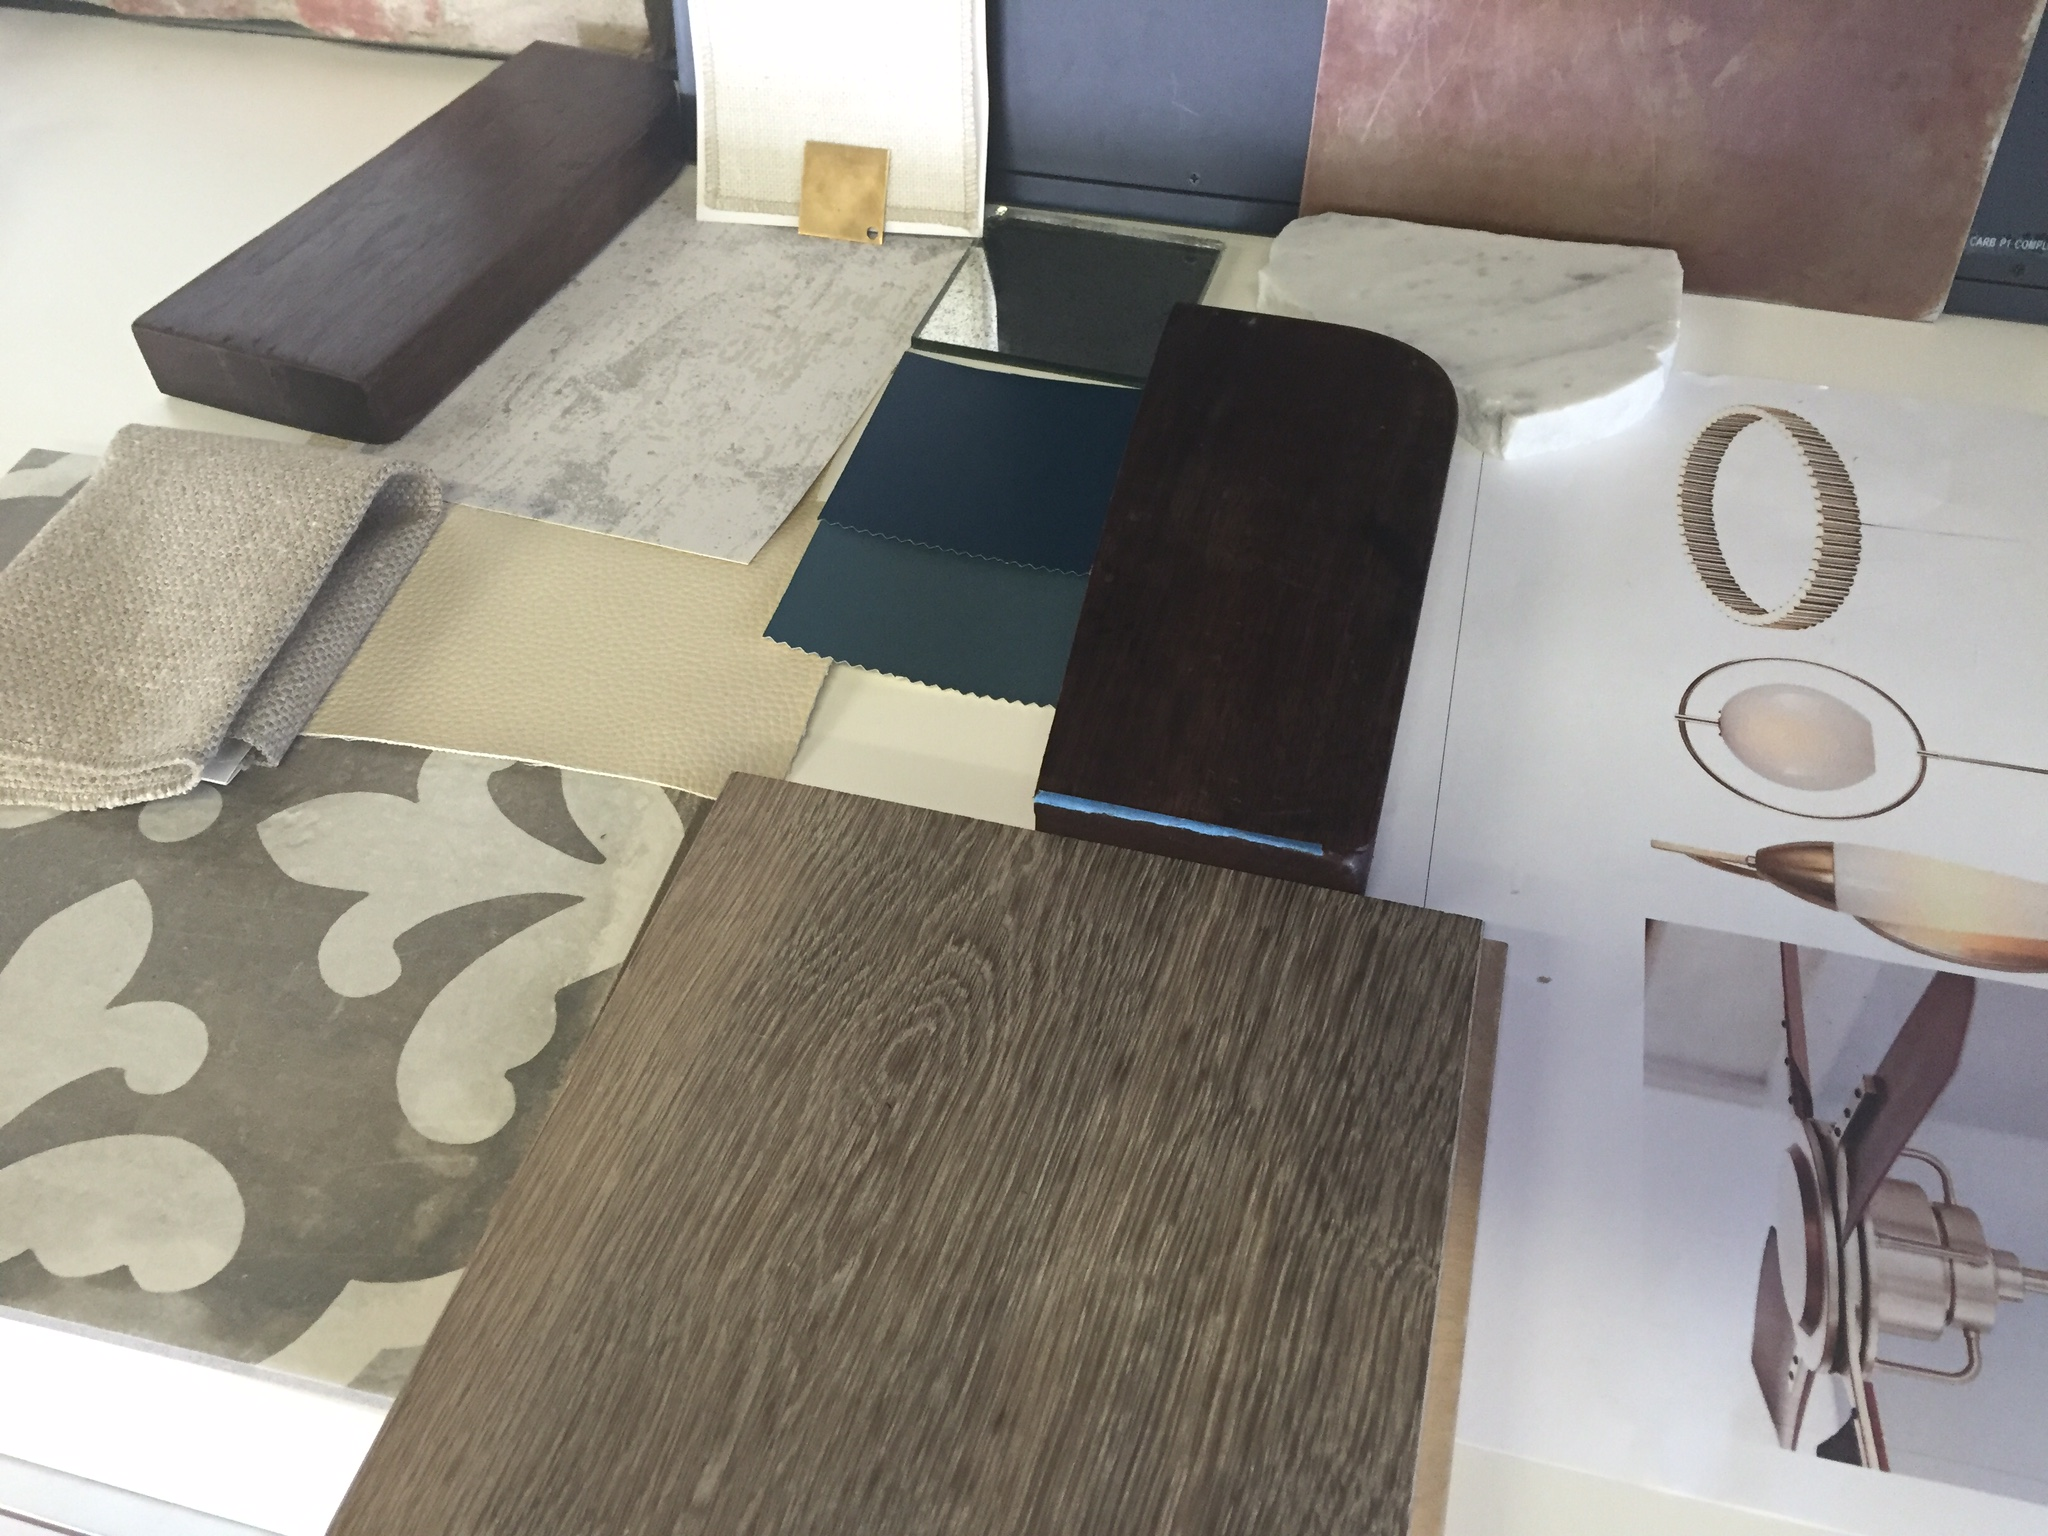 Design options for The Wolf, LMBInteriors, Oakland restaurant design